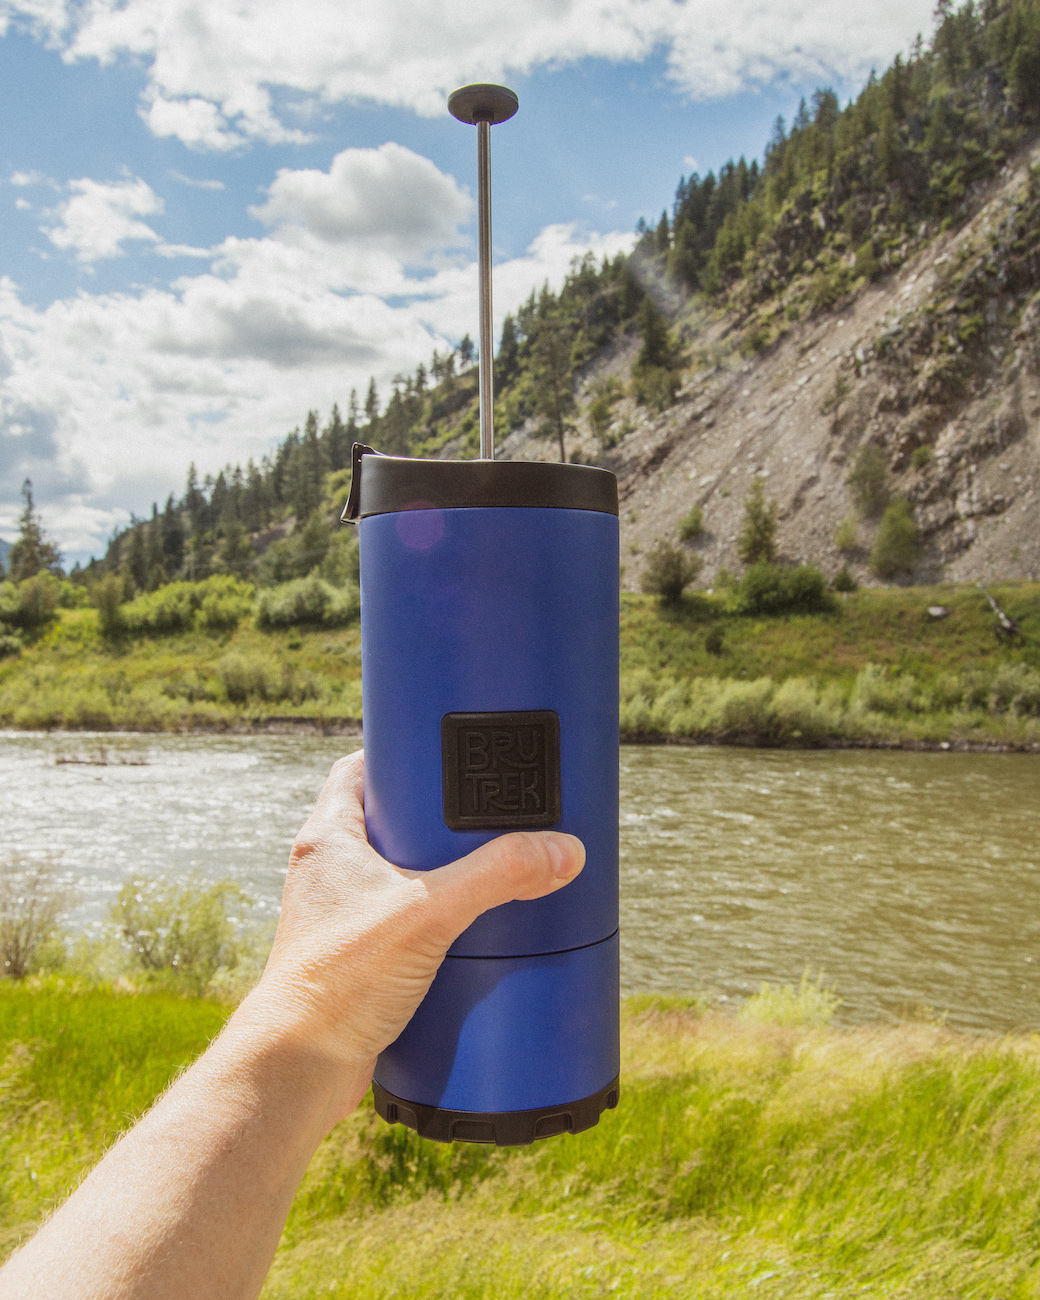 "<p>Planetary Design's OVRLNDR is an easy-to-clean French press that's a great way to brew your favorite cup of Joe on road-trips, at a campsite, for a commute, or even in the home kitchen. /{&nbsp;}<a  href=""https://planetarydesign.com/"" target=""_blank"" title=""https://planetarydesign.com/"">Website{&nbsp;}</a>/ Price: $50 / Image courtesy of Planetary Design // Published: 12.6.20</p>"